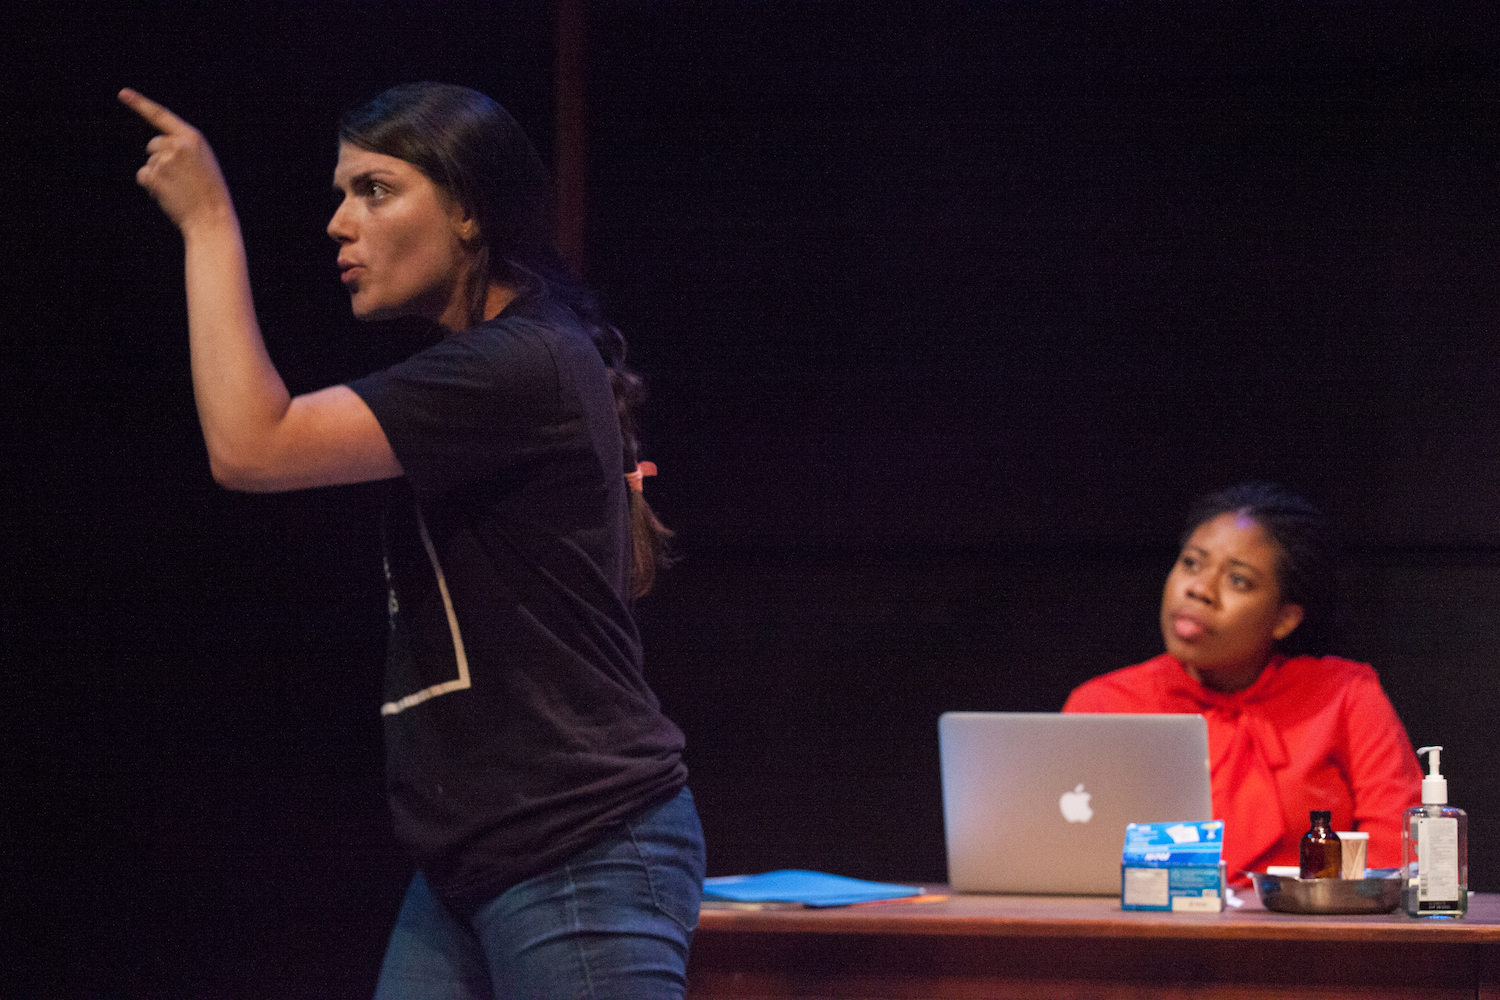 Sarah Rossman and Kate Odolukwe in WHAT THE MARKET WILL BEAR. Photo by Carolyn Brown.